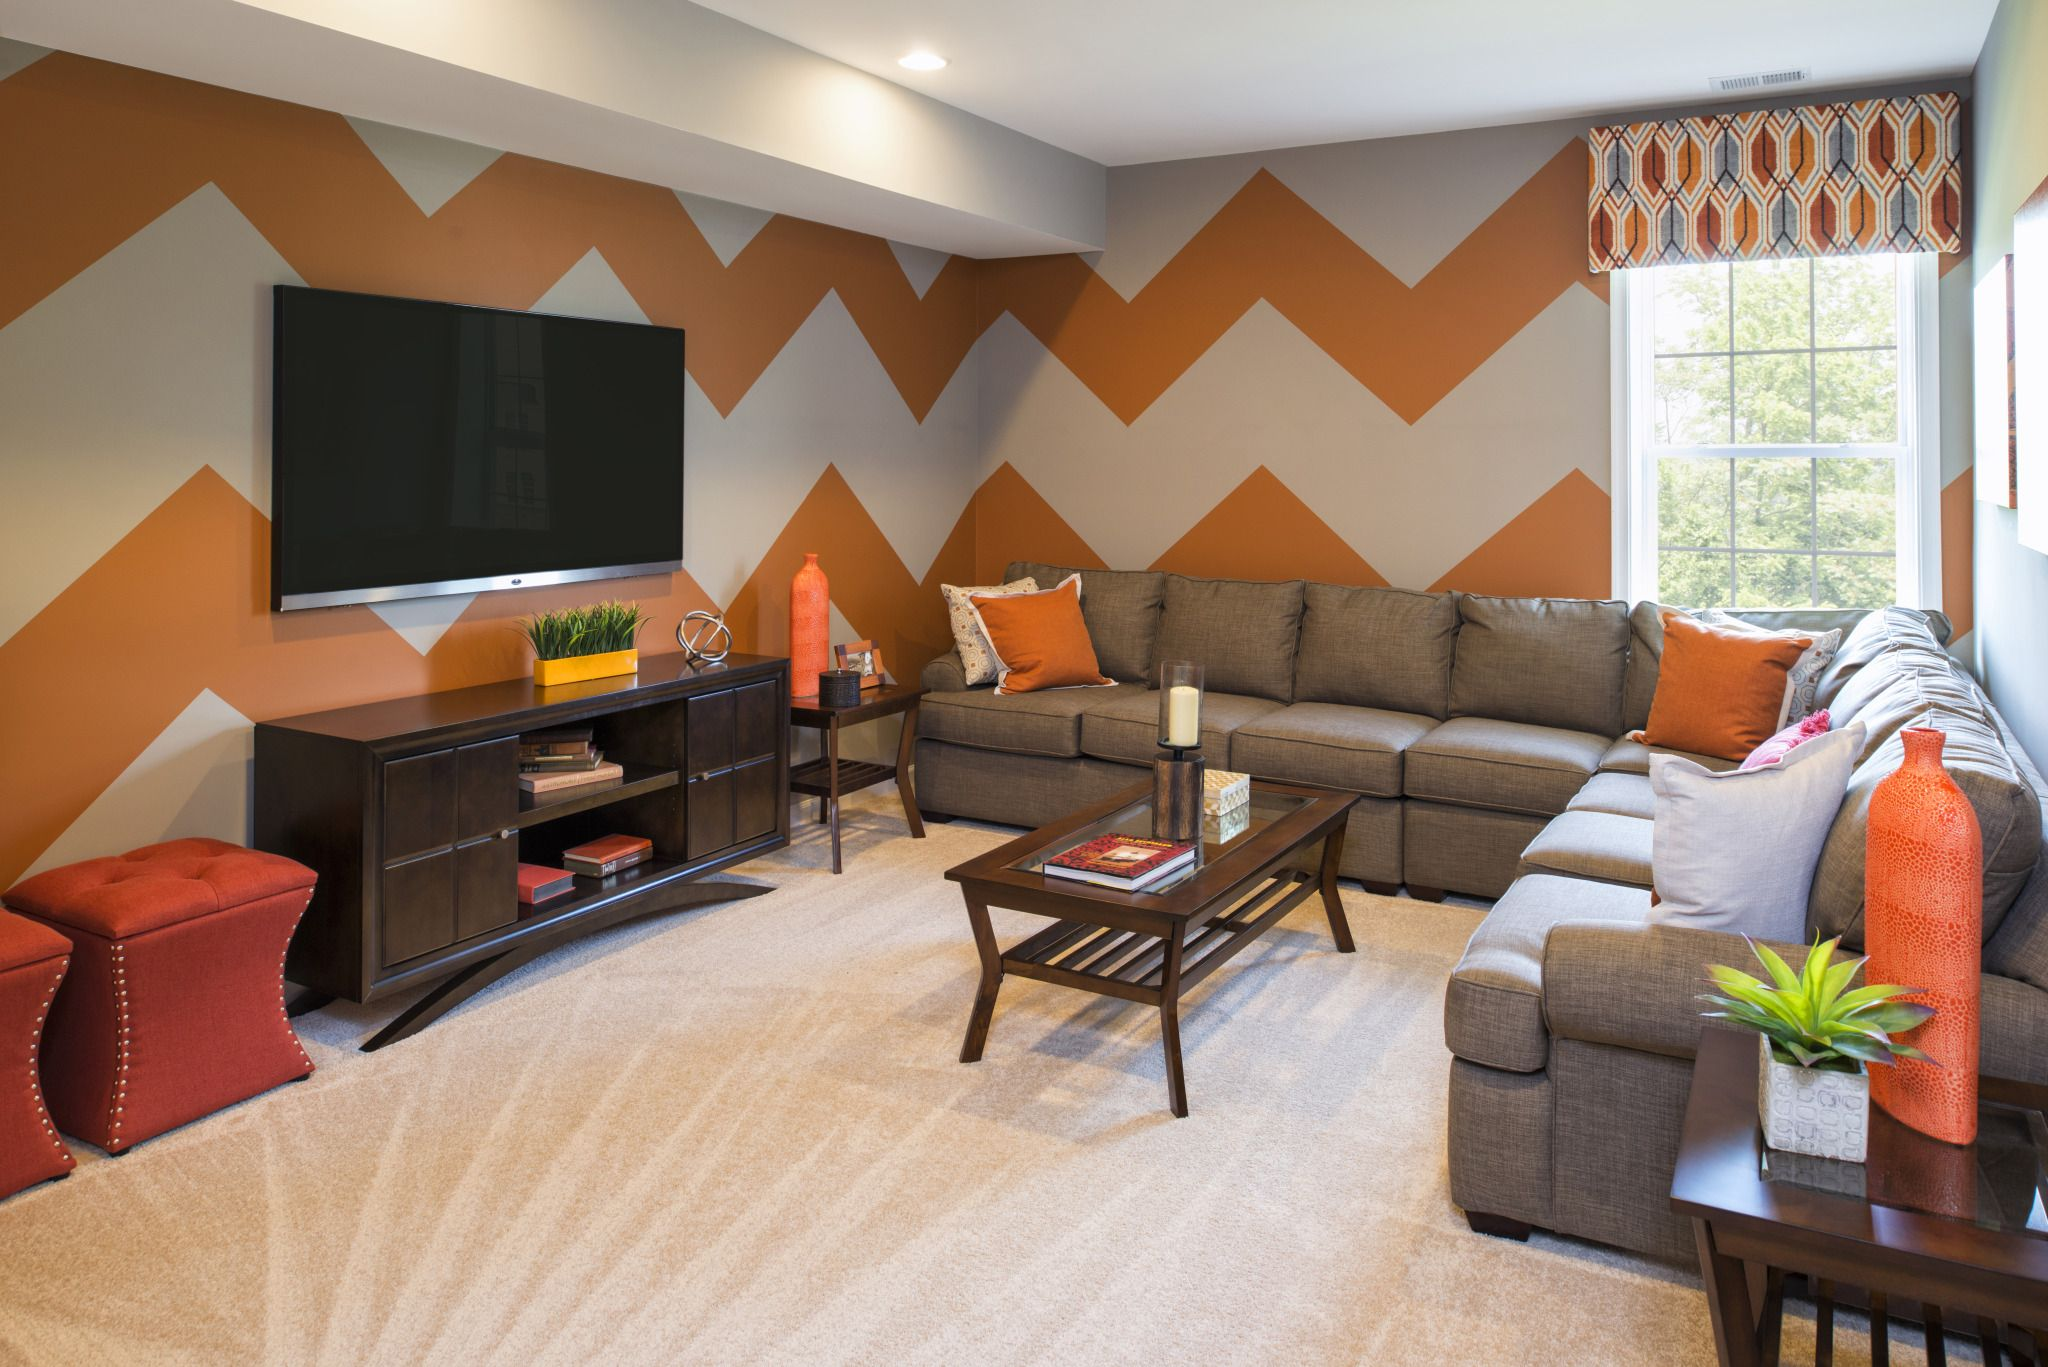 When painting a wall DESIGN, do you use zigzag LINES